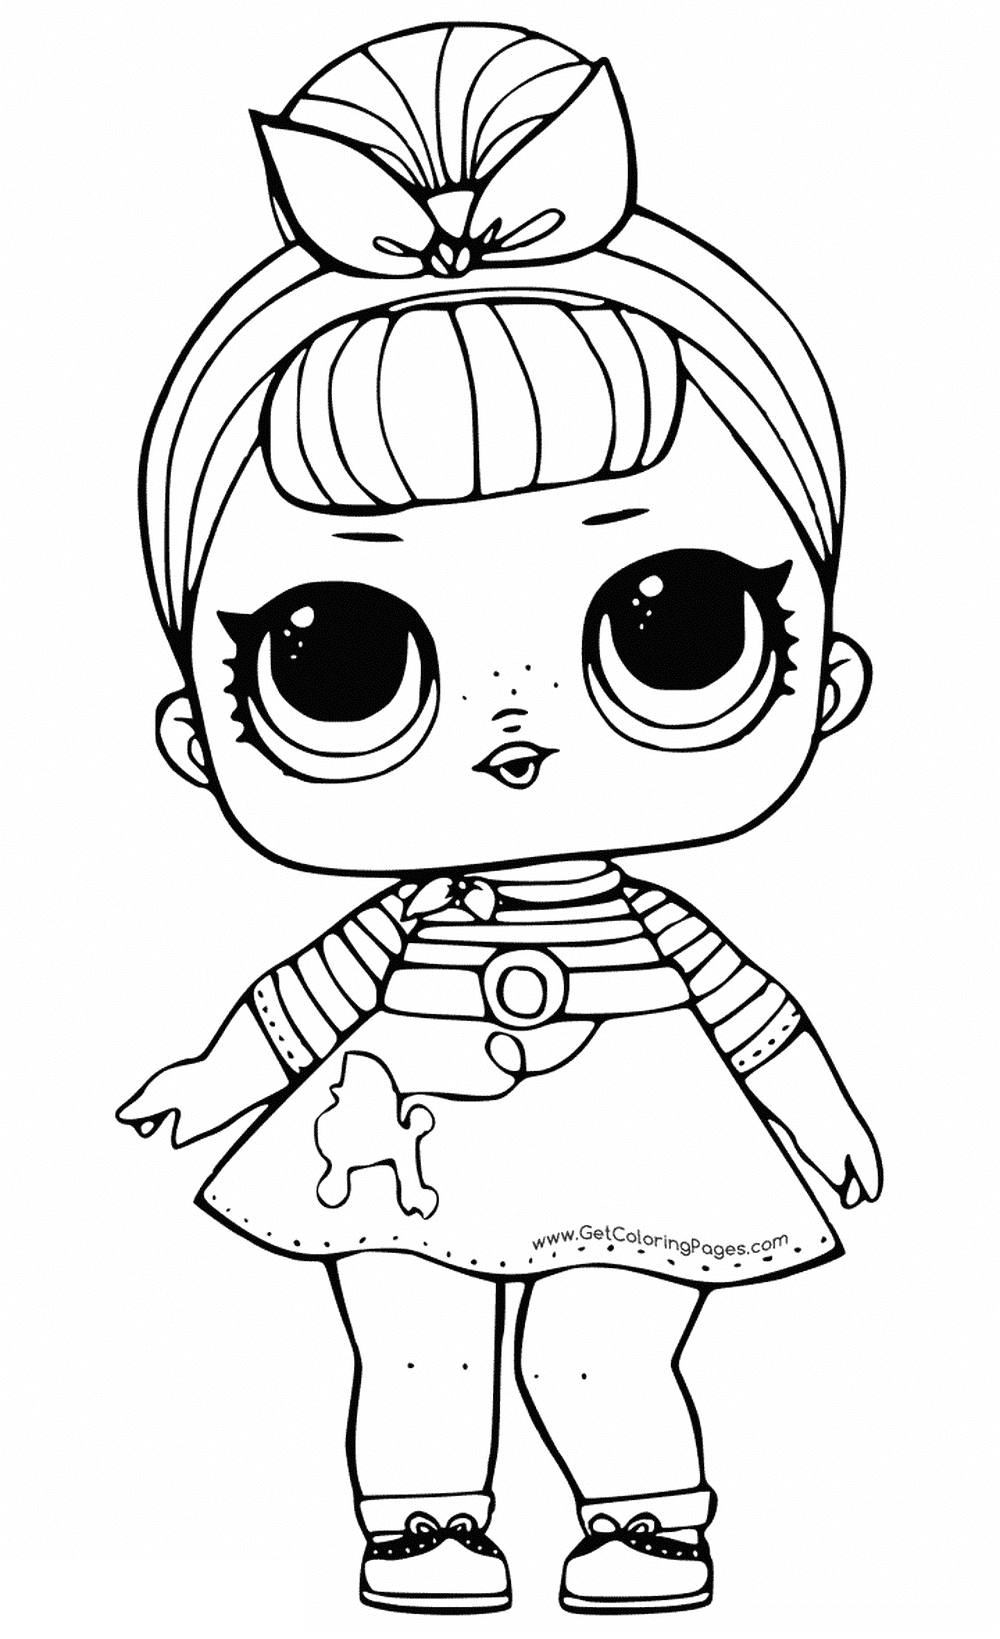 coloring pages of durprise dolls